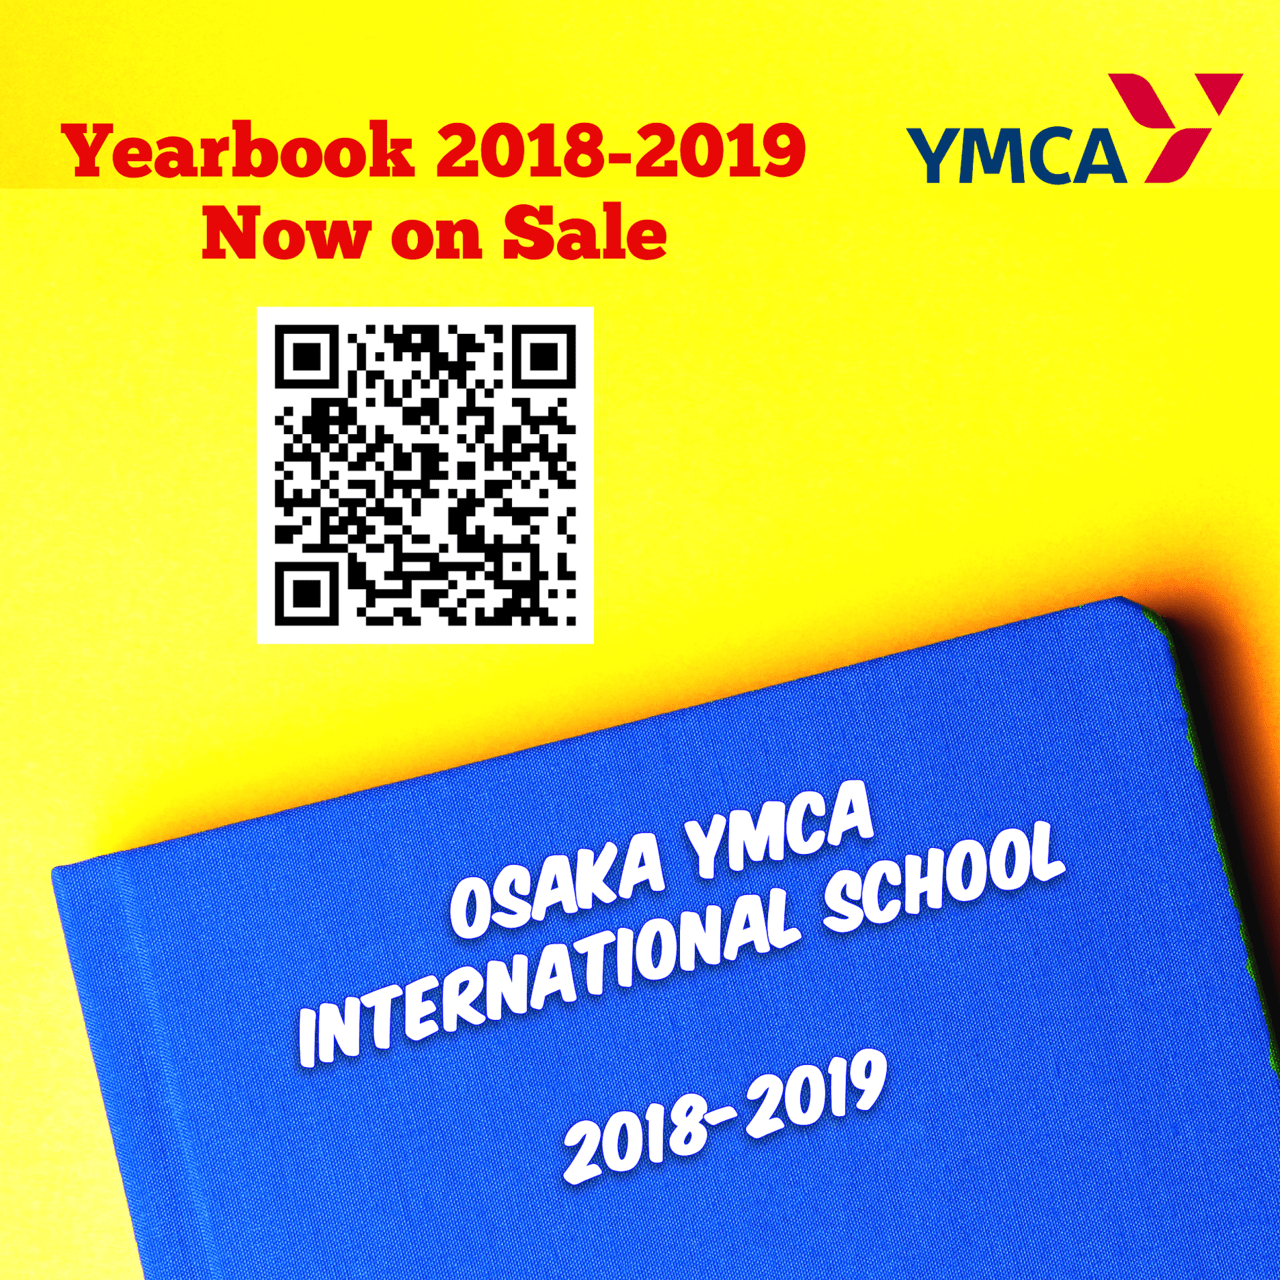 Yearbook 2018-2019